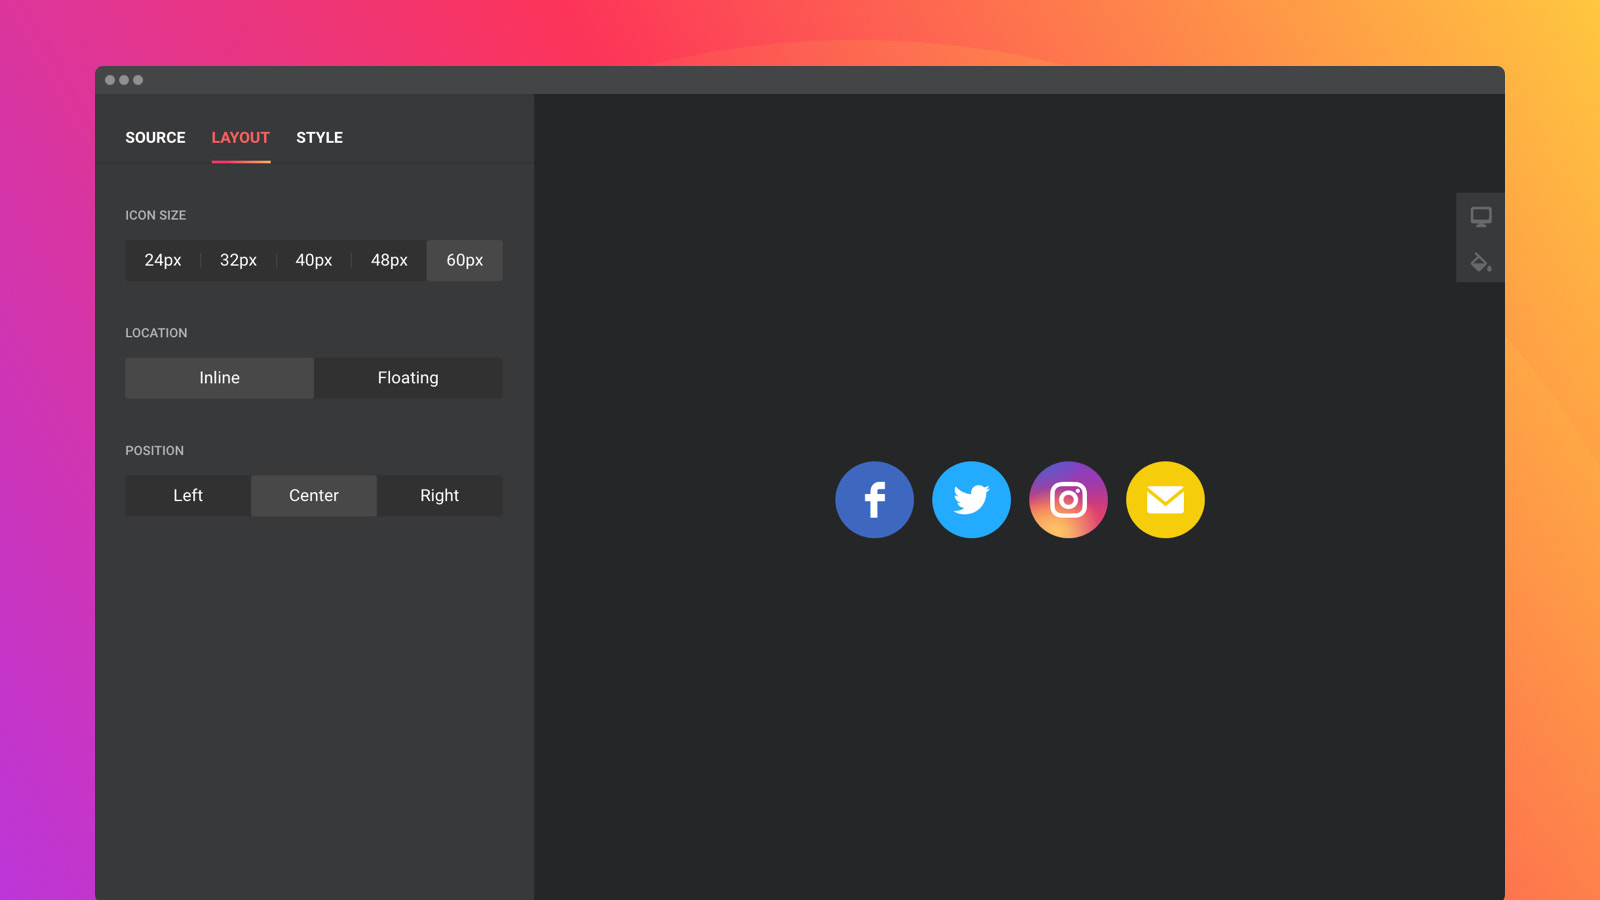 Customize the size of the icons in one click